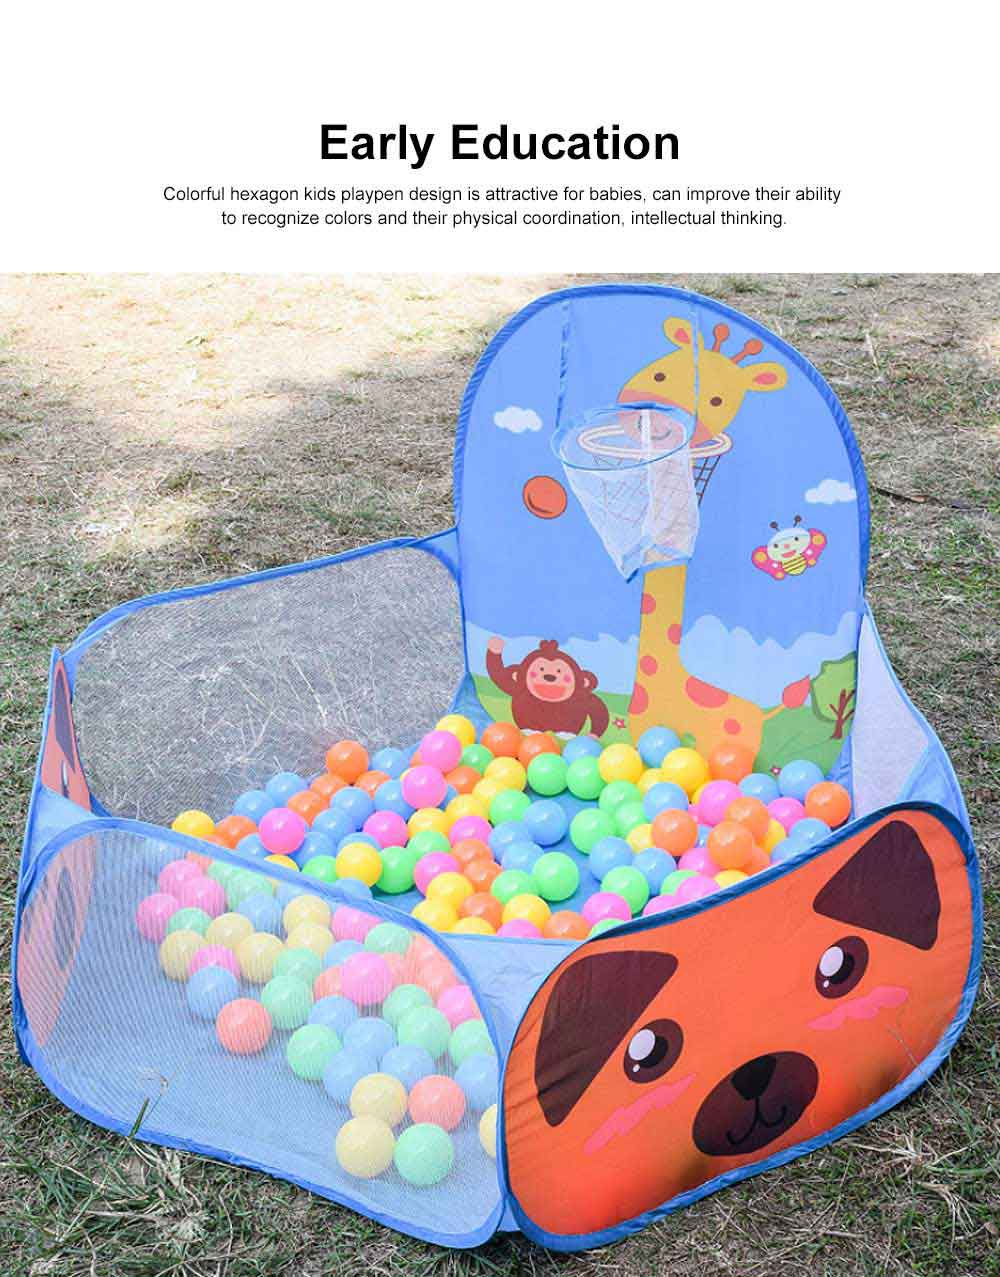 Baby Play Tent, Large Foldable Sea Ball Pits Pool with Basketball Hoopm, Baby Early Education Toys 1